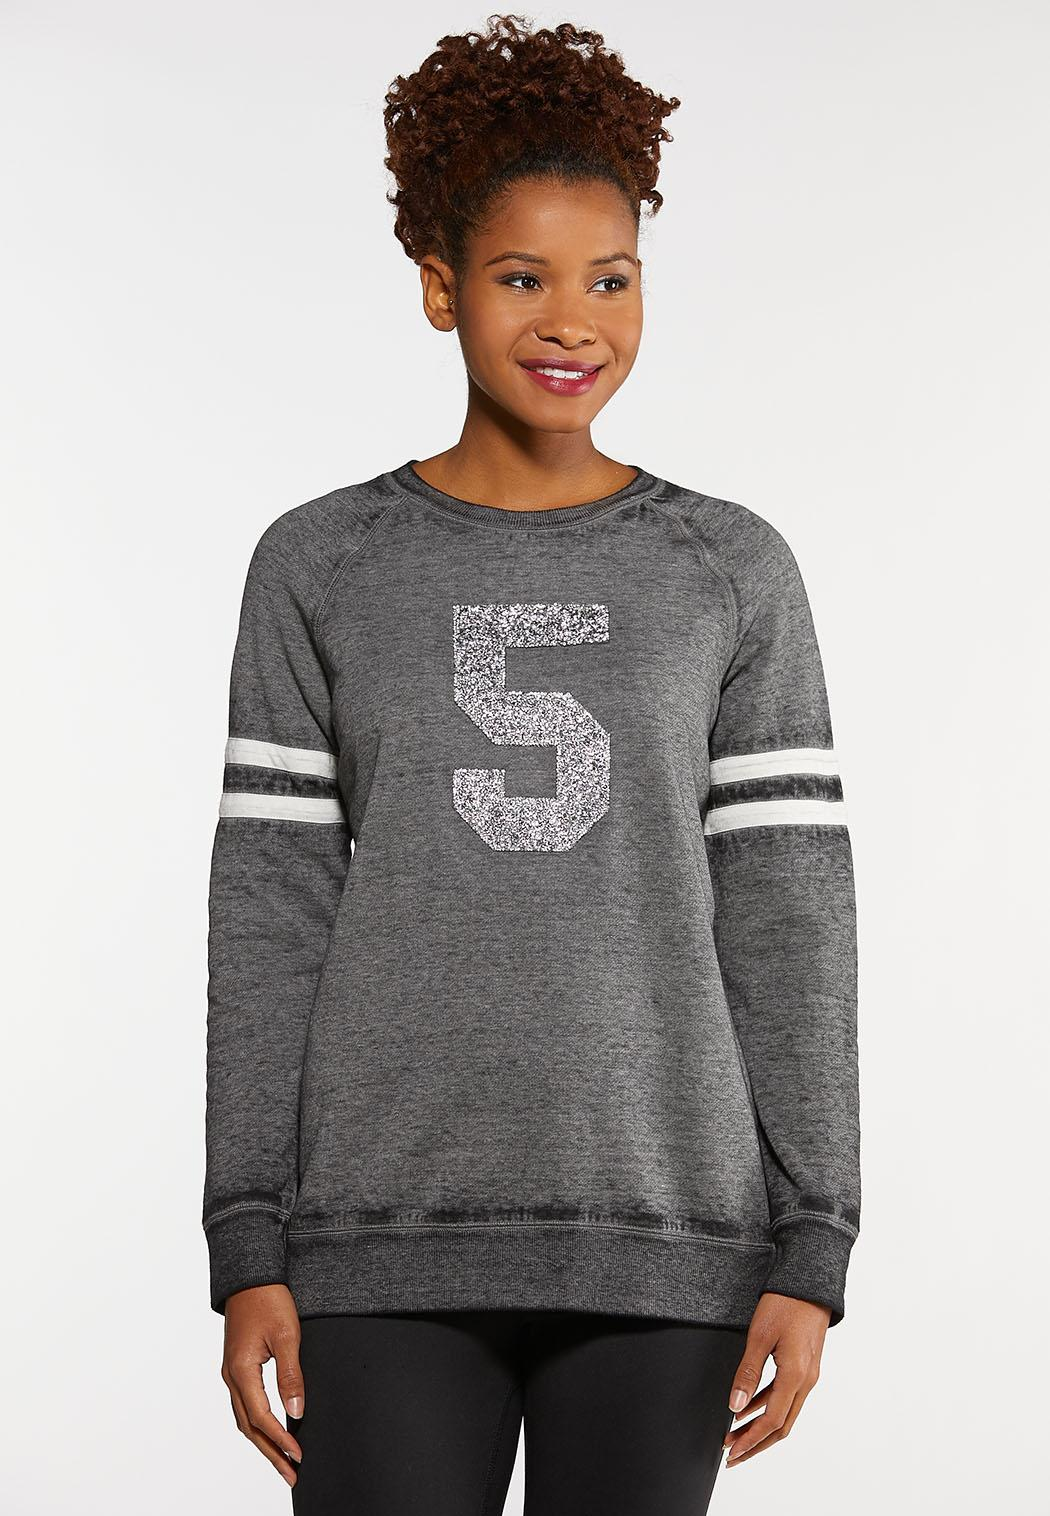 Plus Size Sport And Sparkle Sweatshirt Tops Cato Fashions